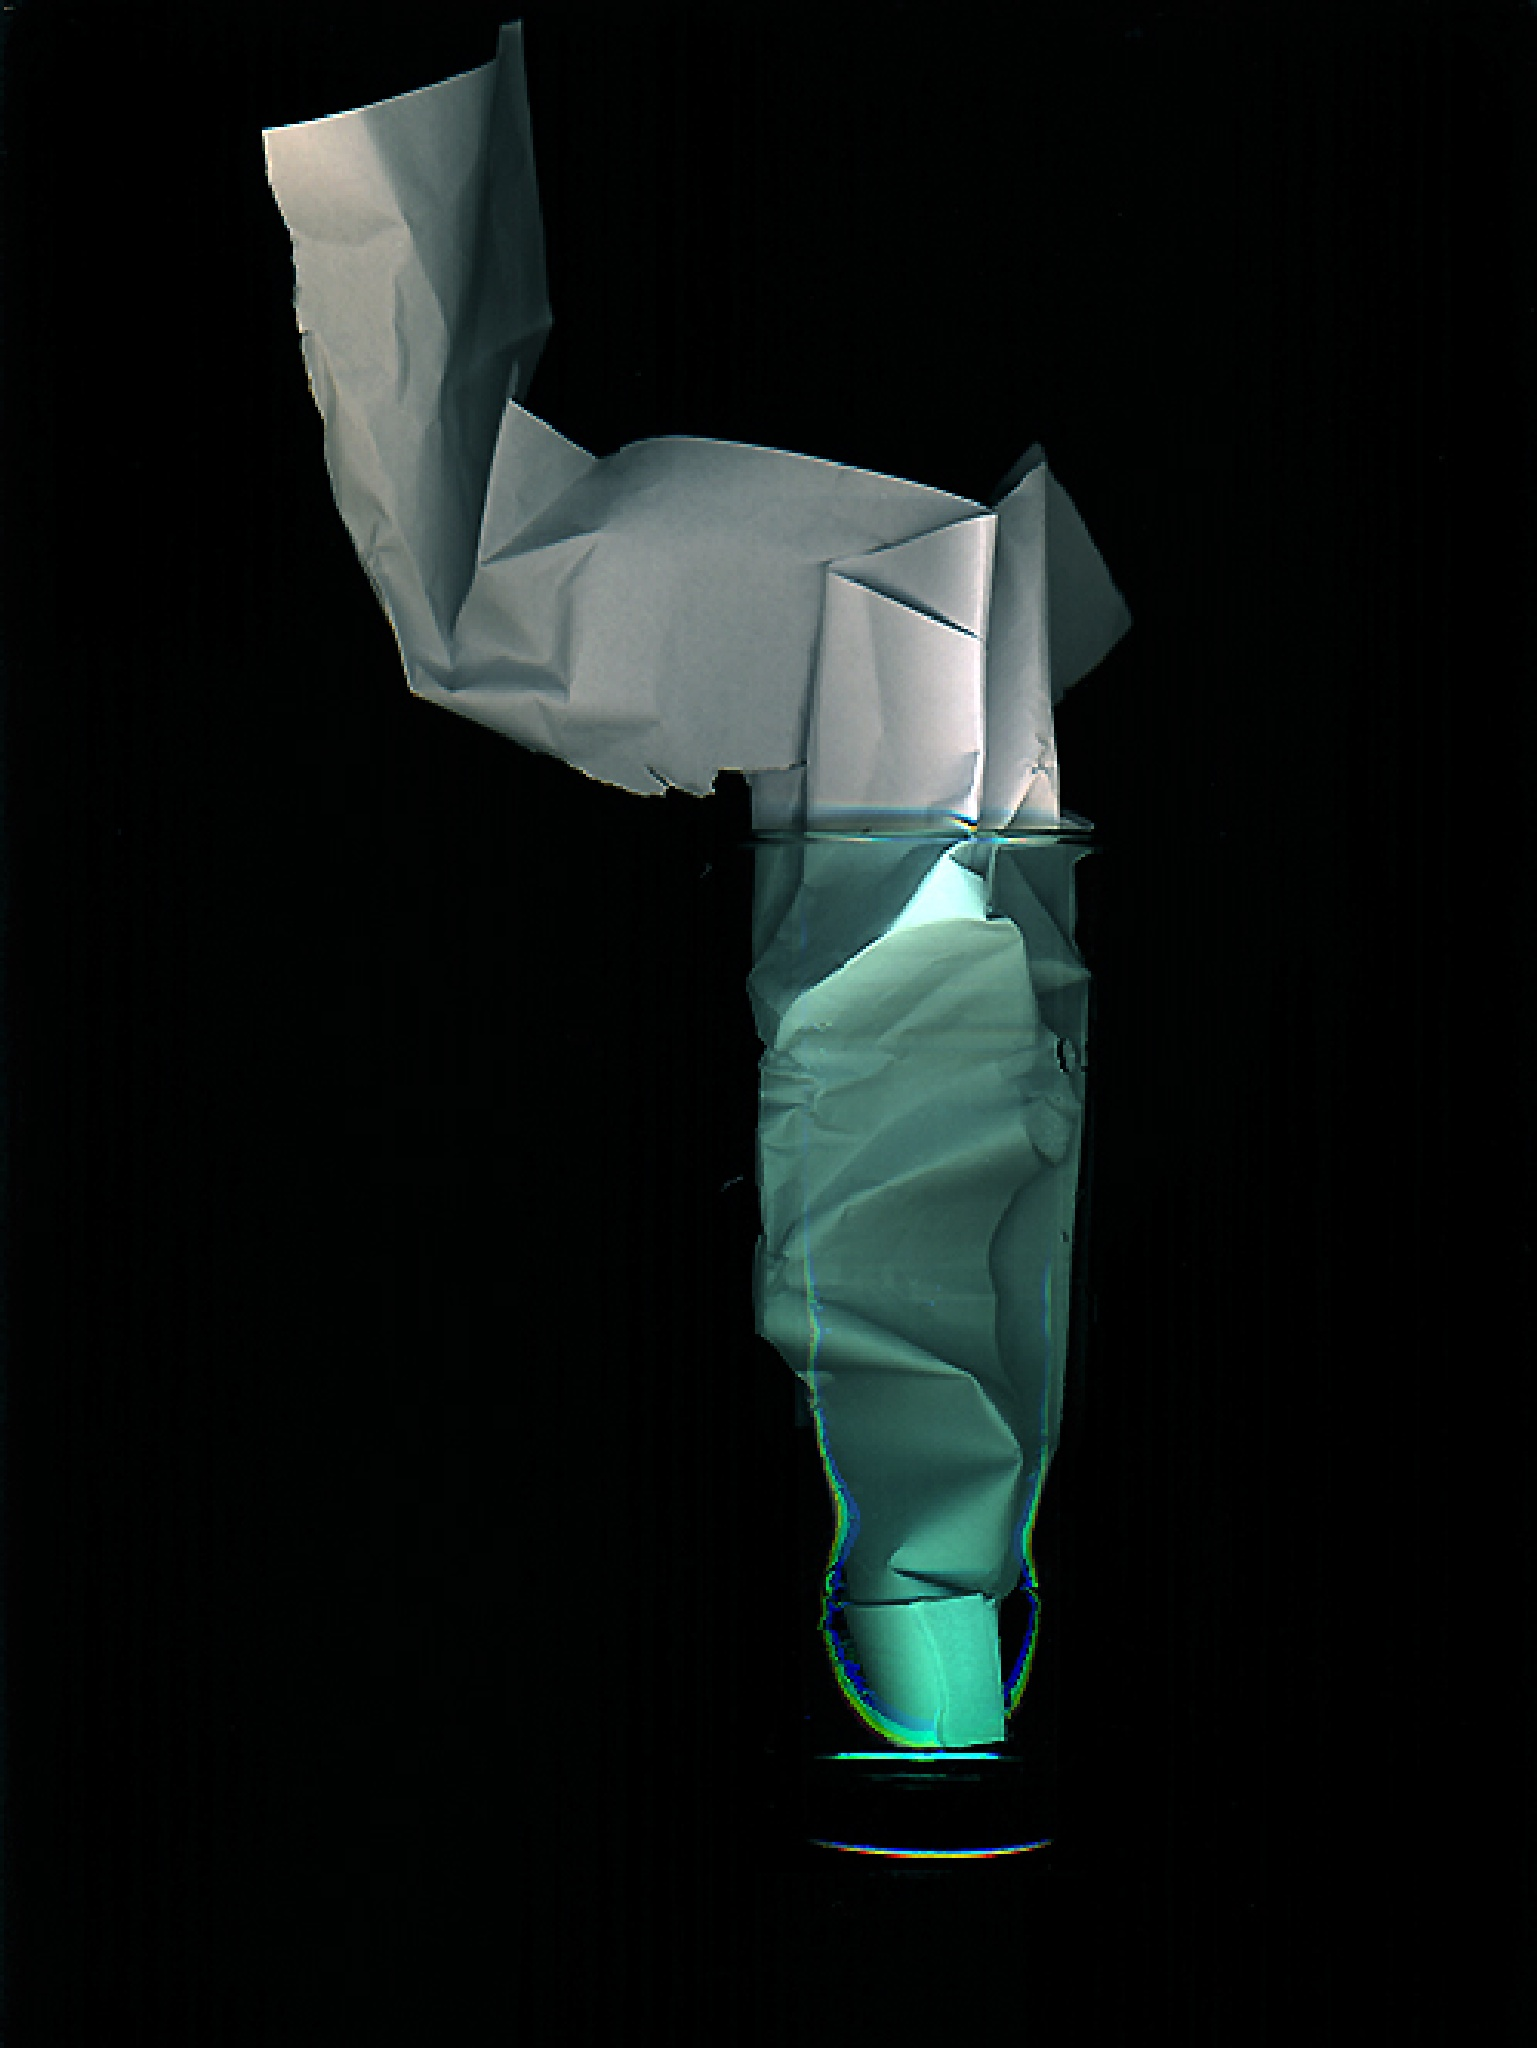 Glass with paper by Gernot Schwarz